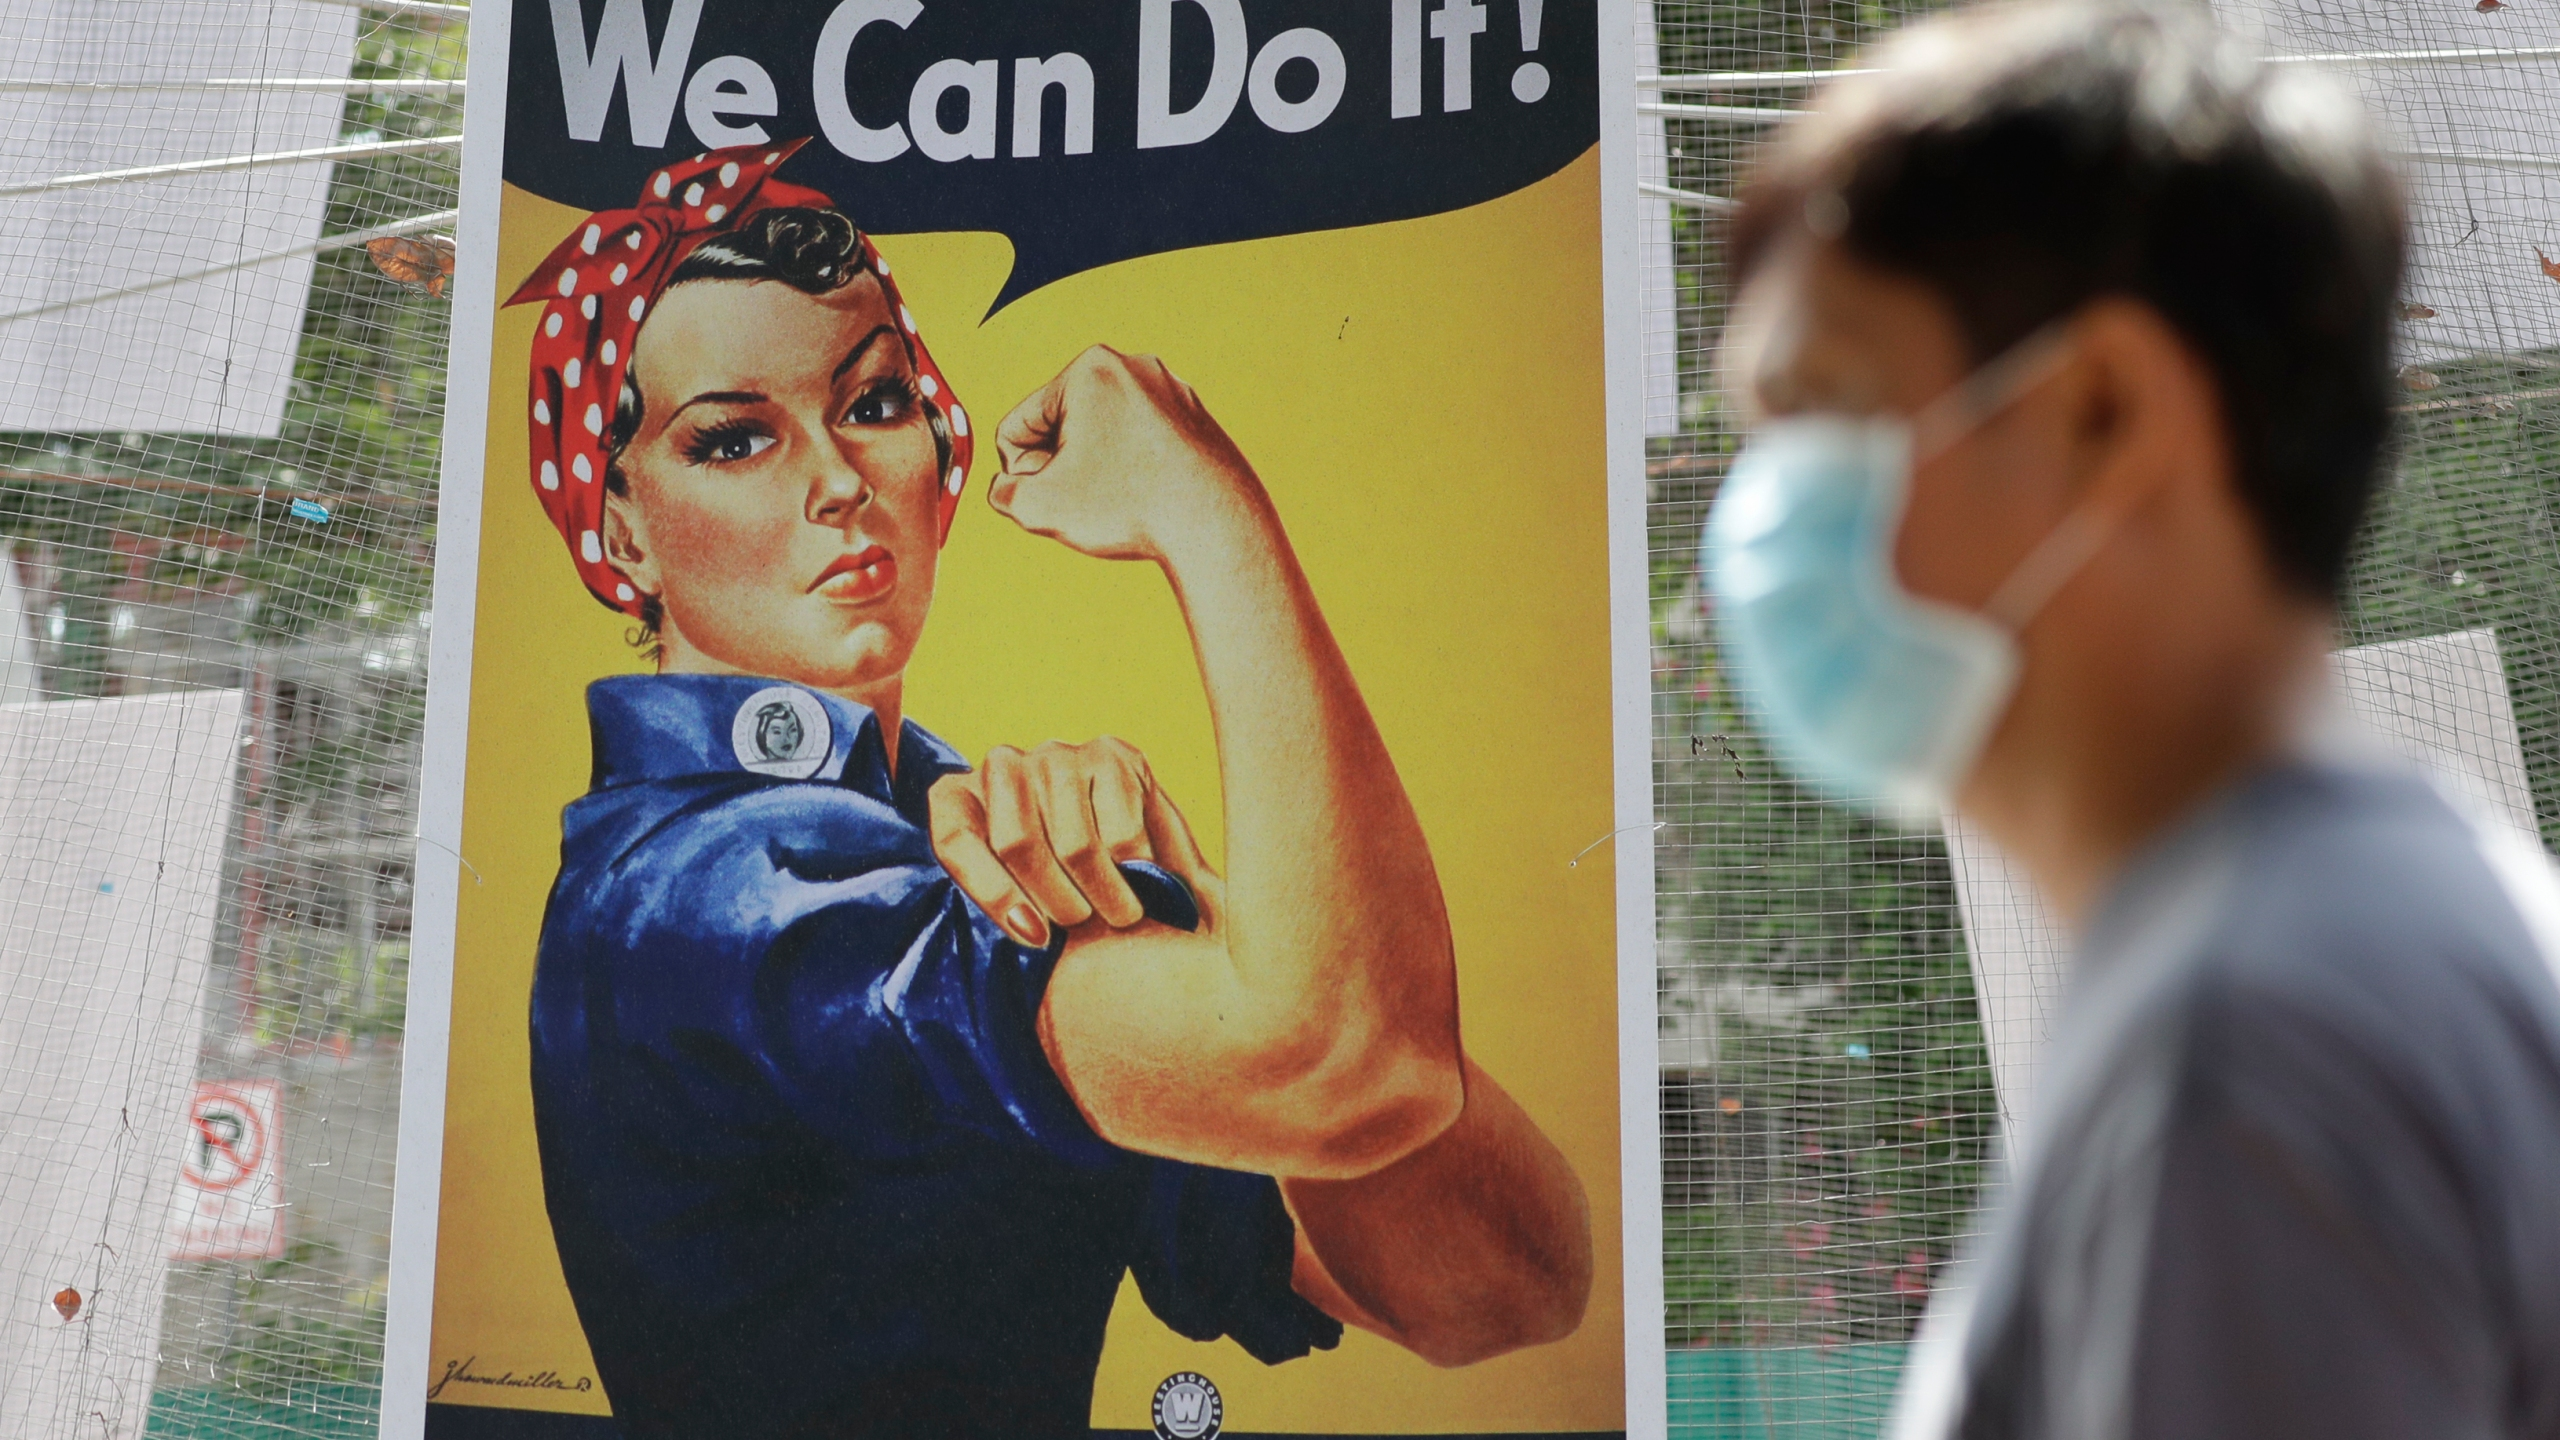 A man wearing a protective mask walks beside a poster of American WWII icon Rosie the Riveter, at the Quezon city hall where volunteers and workers help prepare food during the community quarantine aimed to prevent the spread of the new coronavirus in Manila, Philippines, Tuesday, March 24, 2020. . (AP Photo/Aaron Favila)